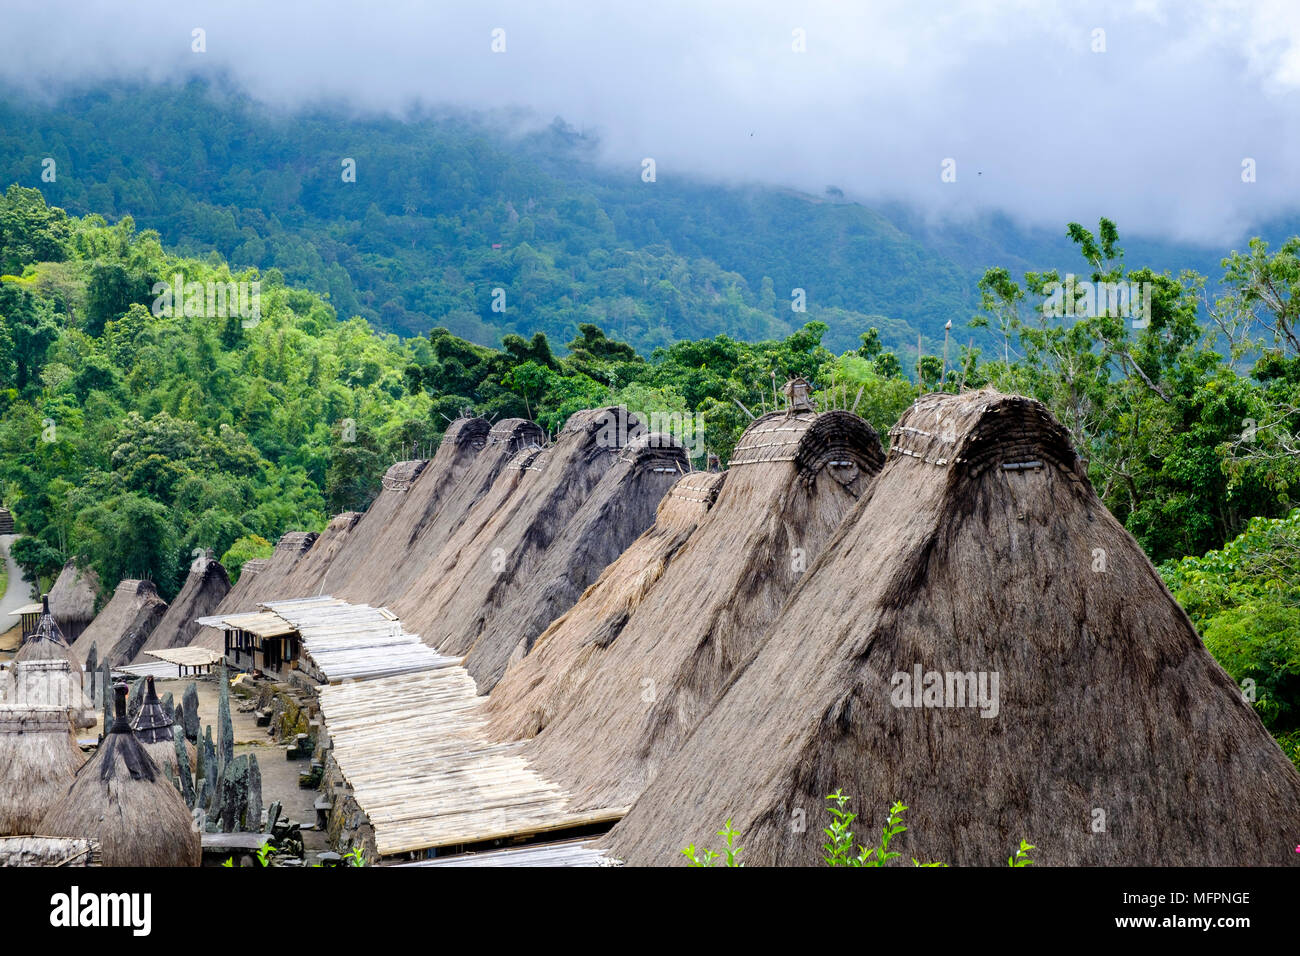 Thatched roofs and jungle, Bena traditional village, Ngada District, Island of Flores, Indonesia. - Stock Image